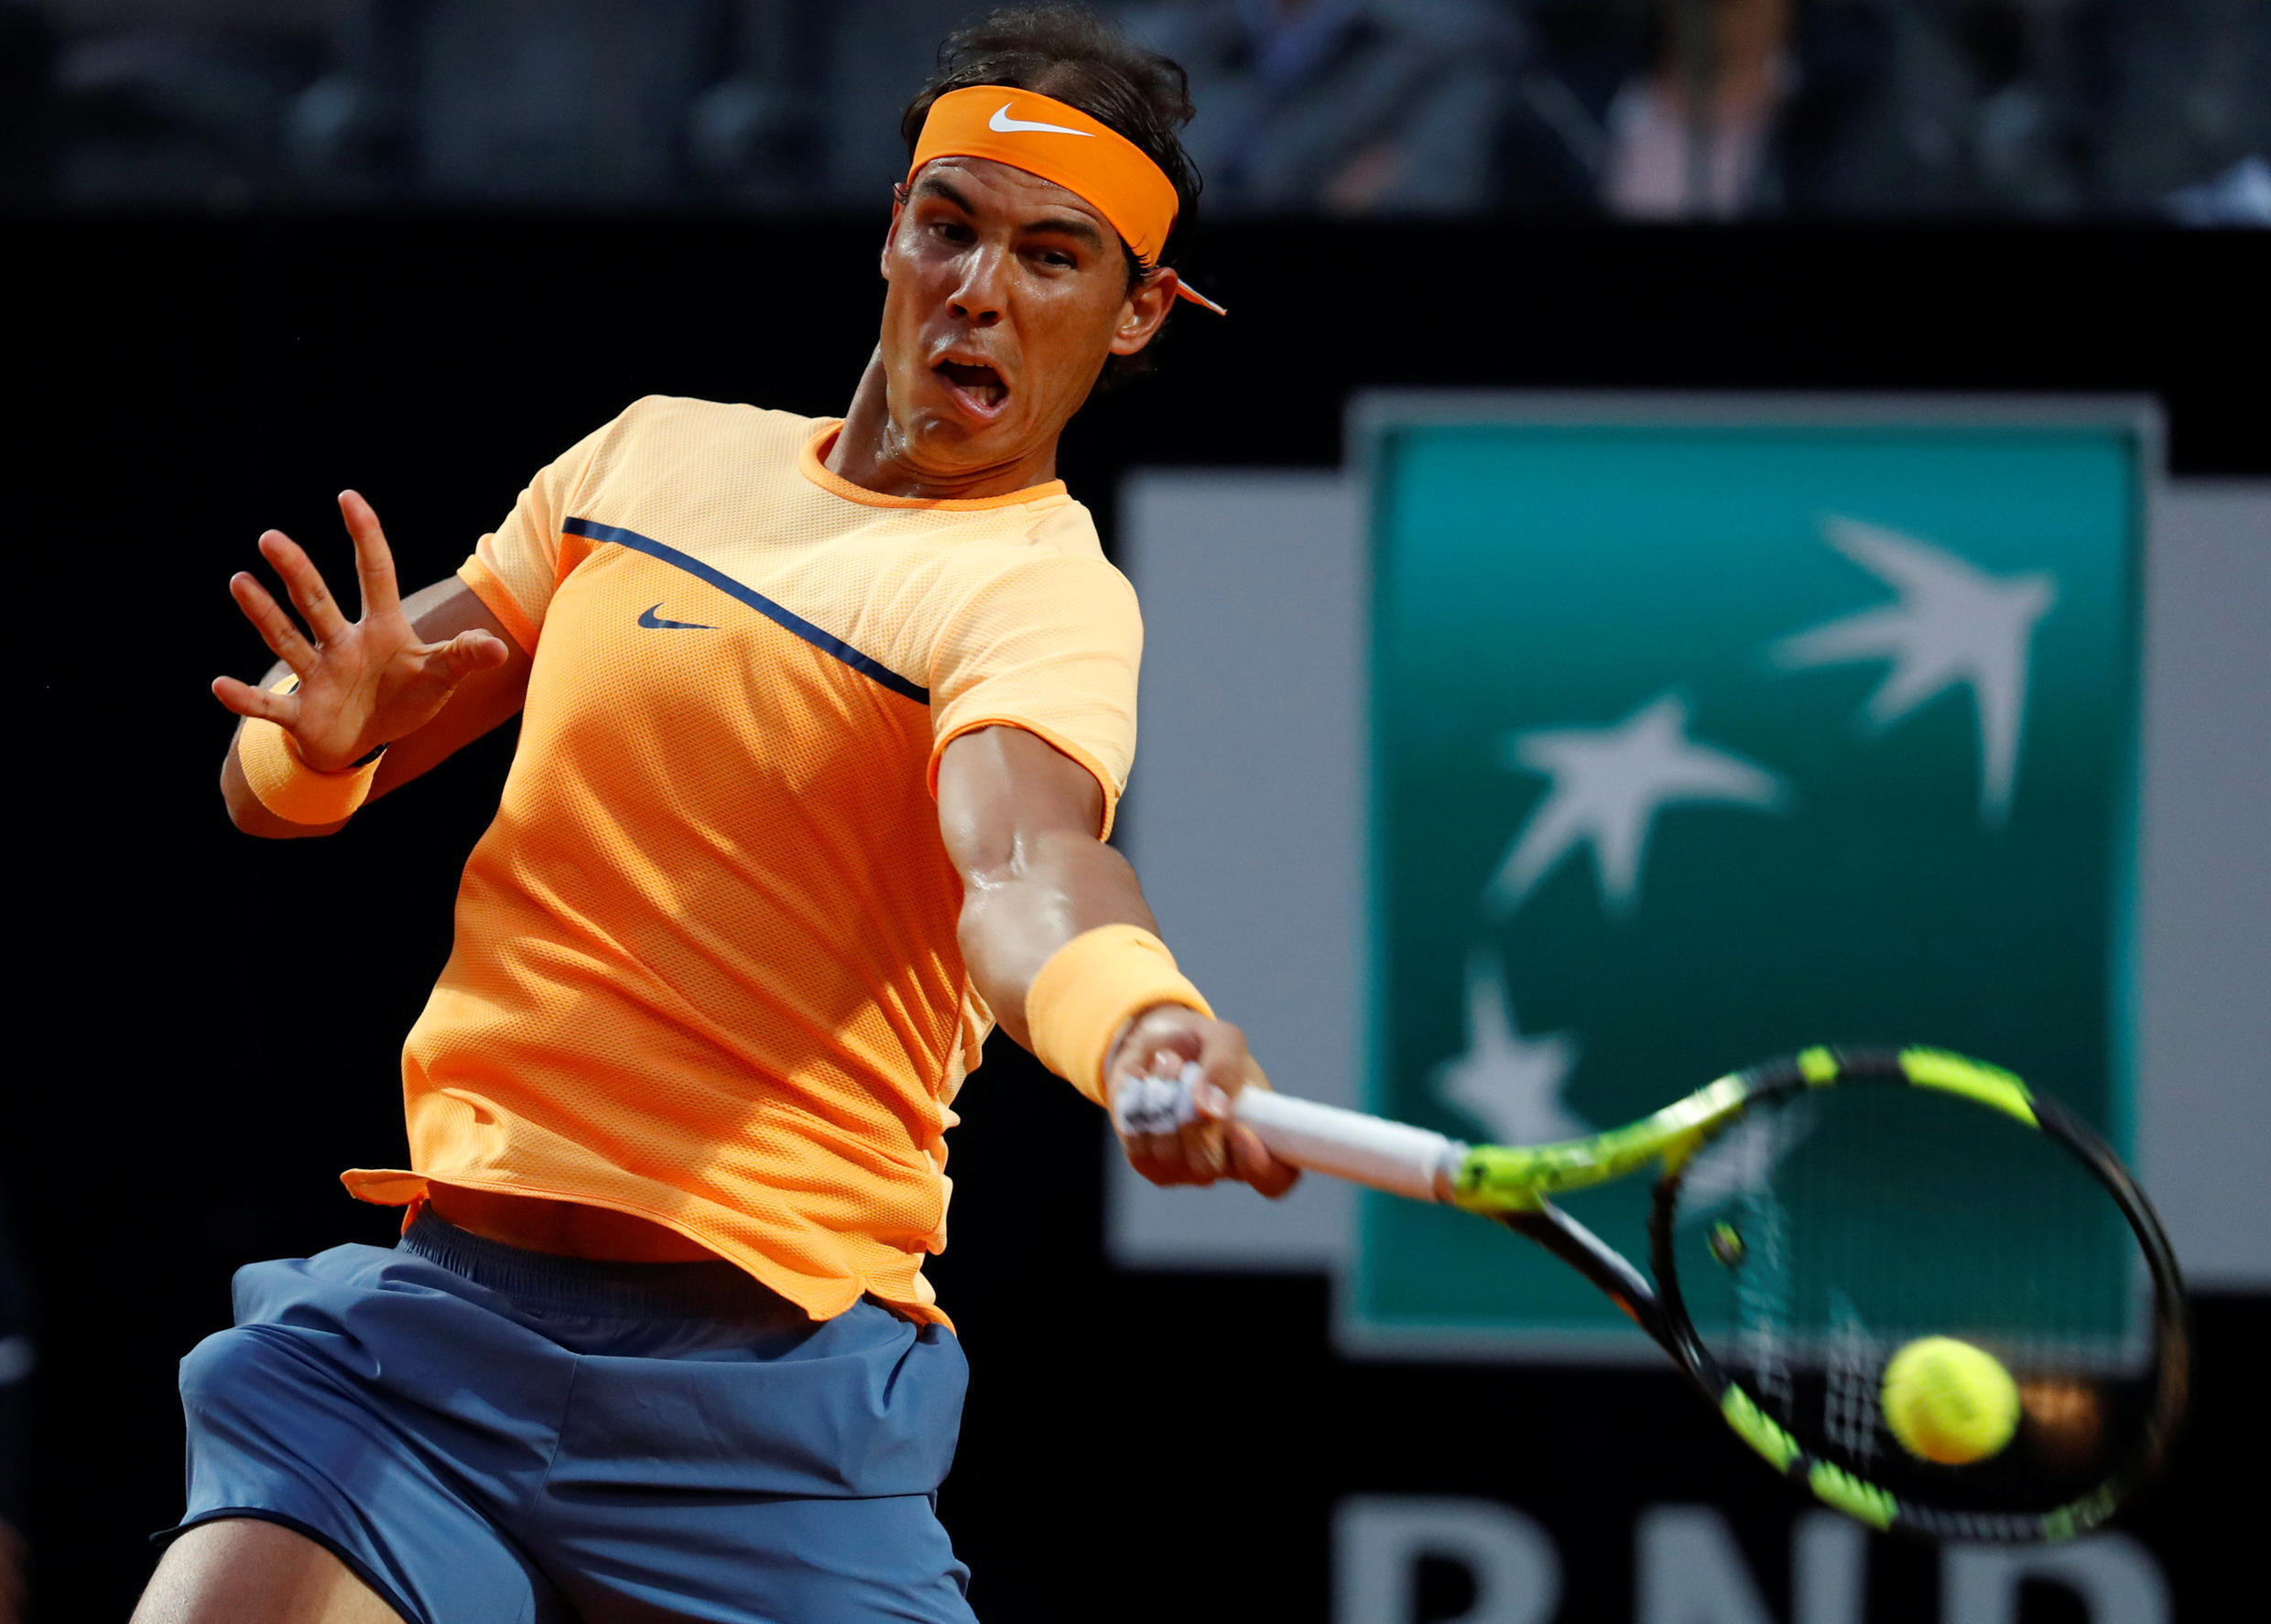 Rafael Nadal failed in 2016 to add to his haul of 14 Grand Slam titles.